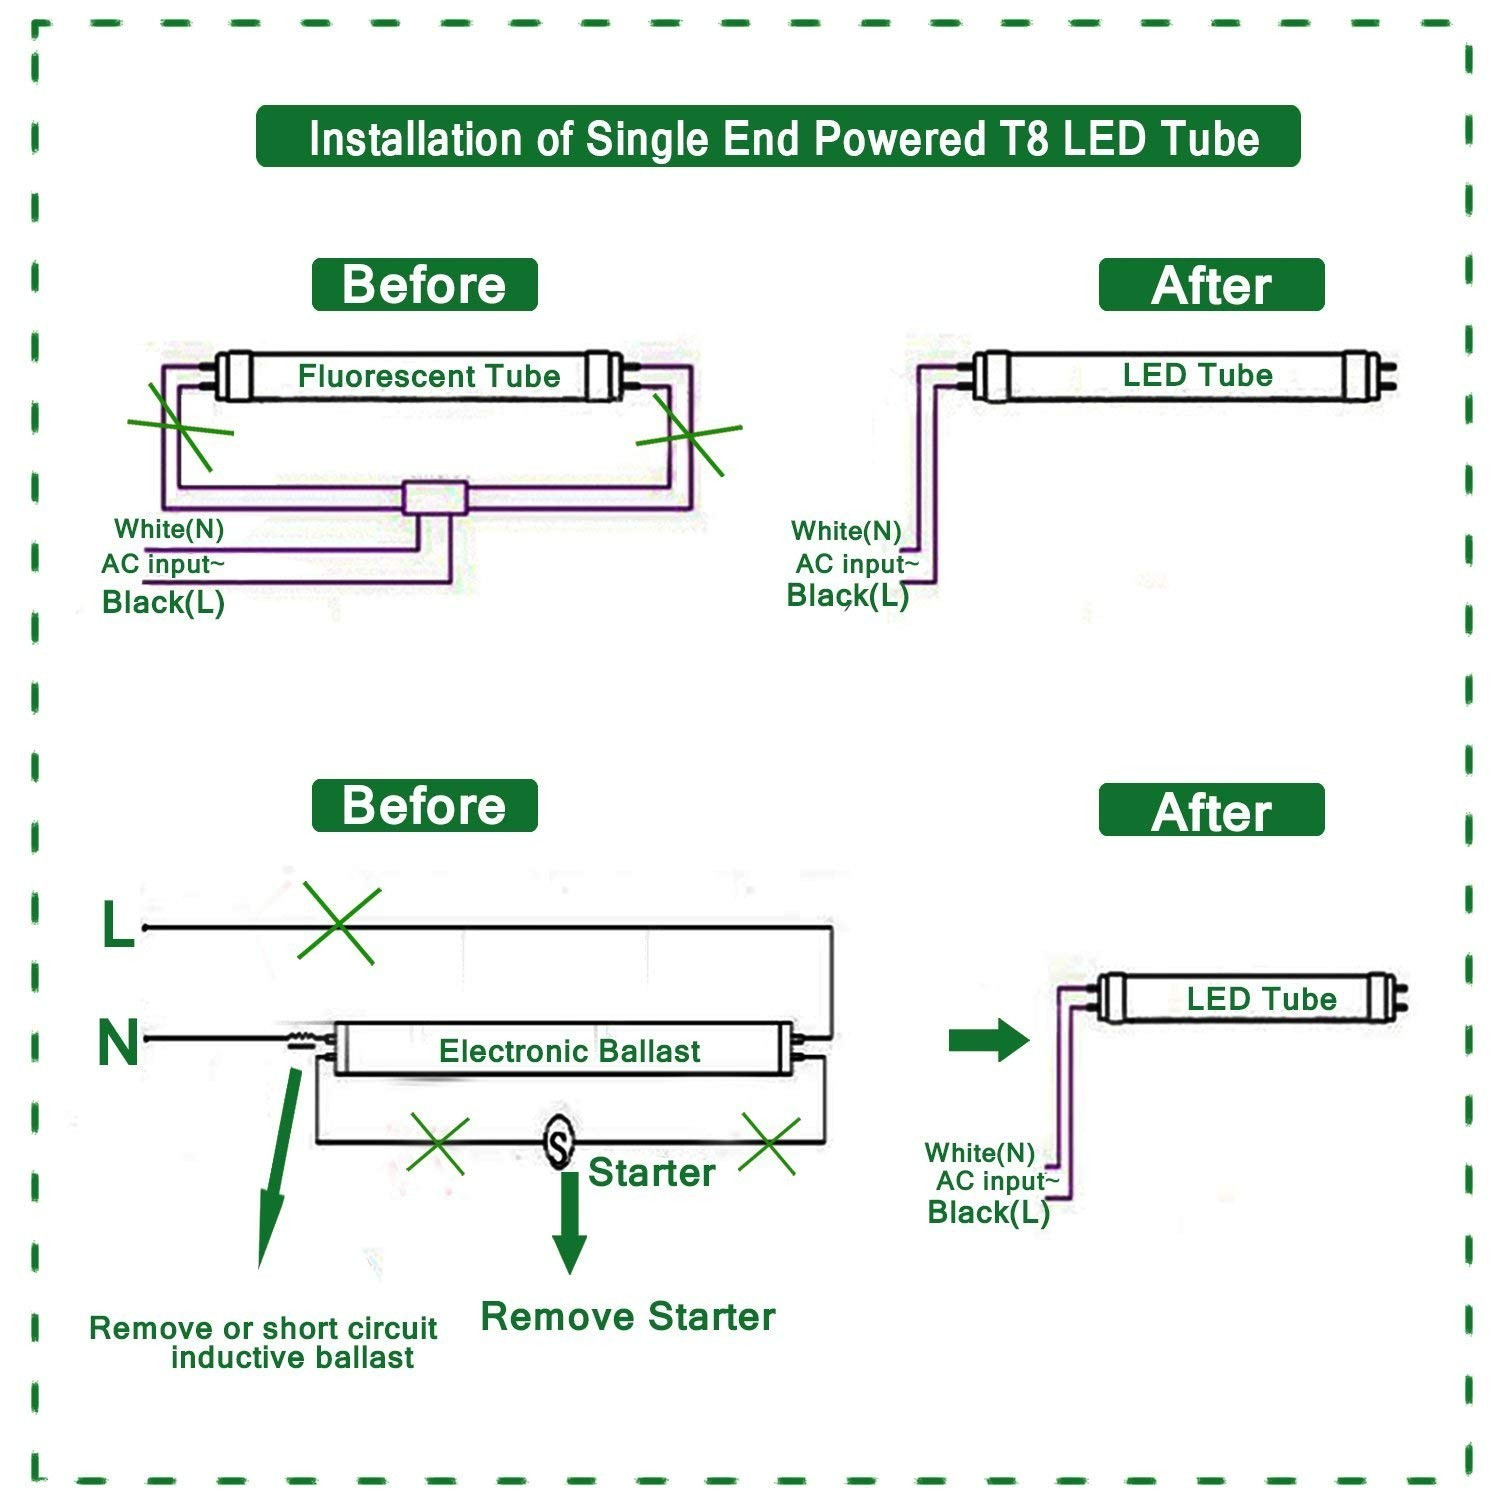 wiring diagram for led tube lights Collection-Wiring Diagram for Fluorescent Light Fresh Wiring Diagram for Led Tubes Refrence Wiring Diagram Led Tube 4-e